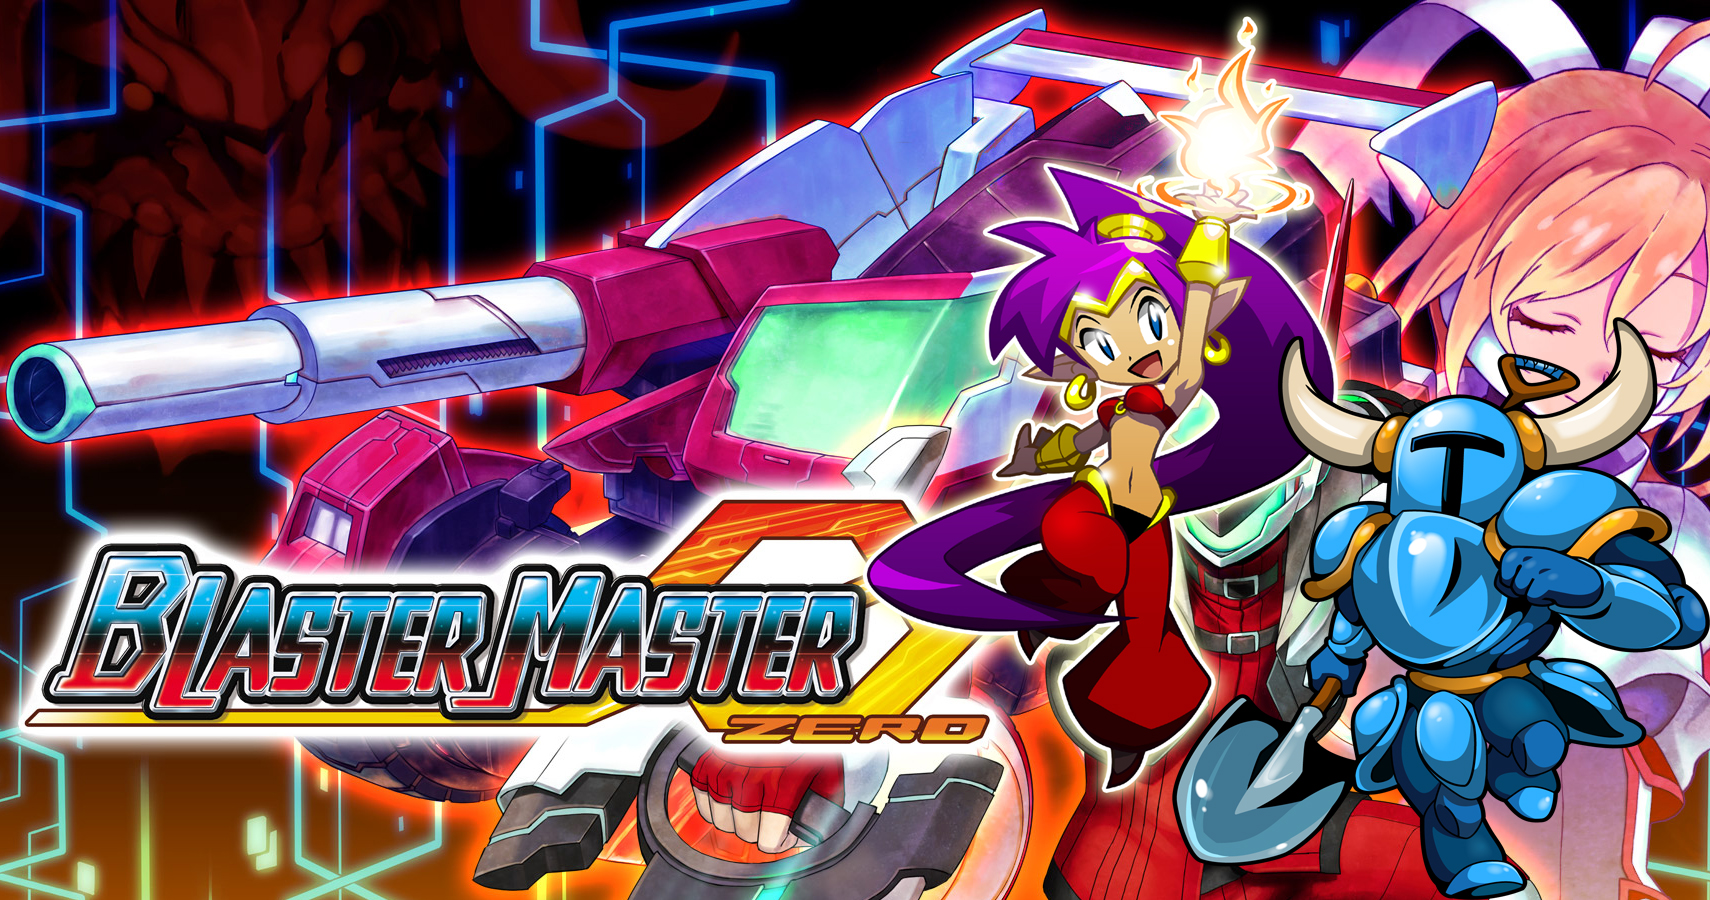 shovel knight and shantae dlc coming to blaster master zero. Black Bedroom Furniture Sets. Home Design Ideas